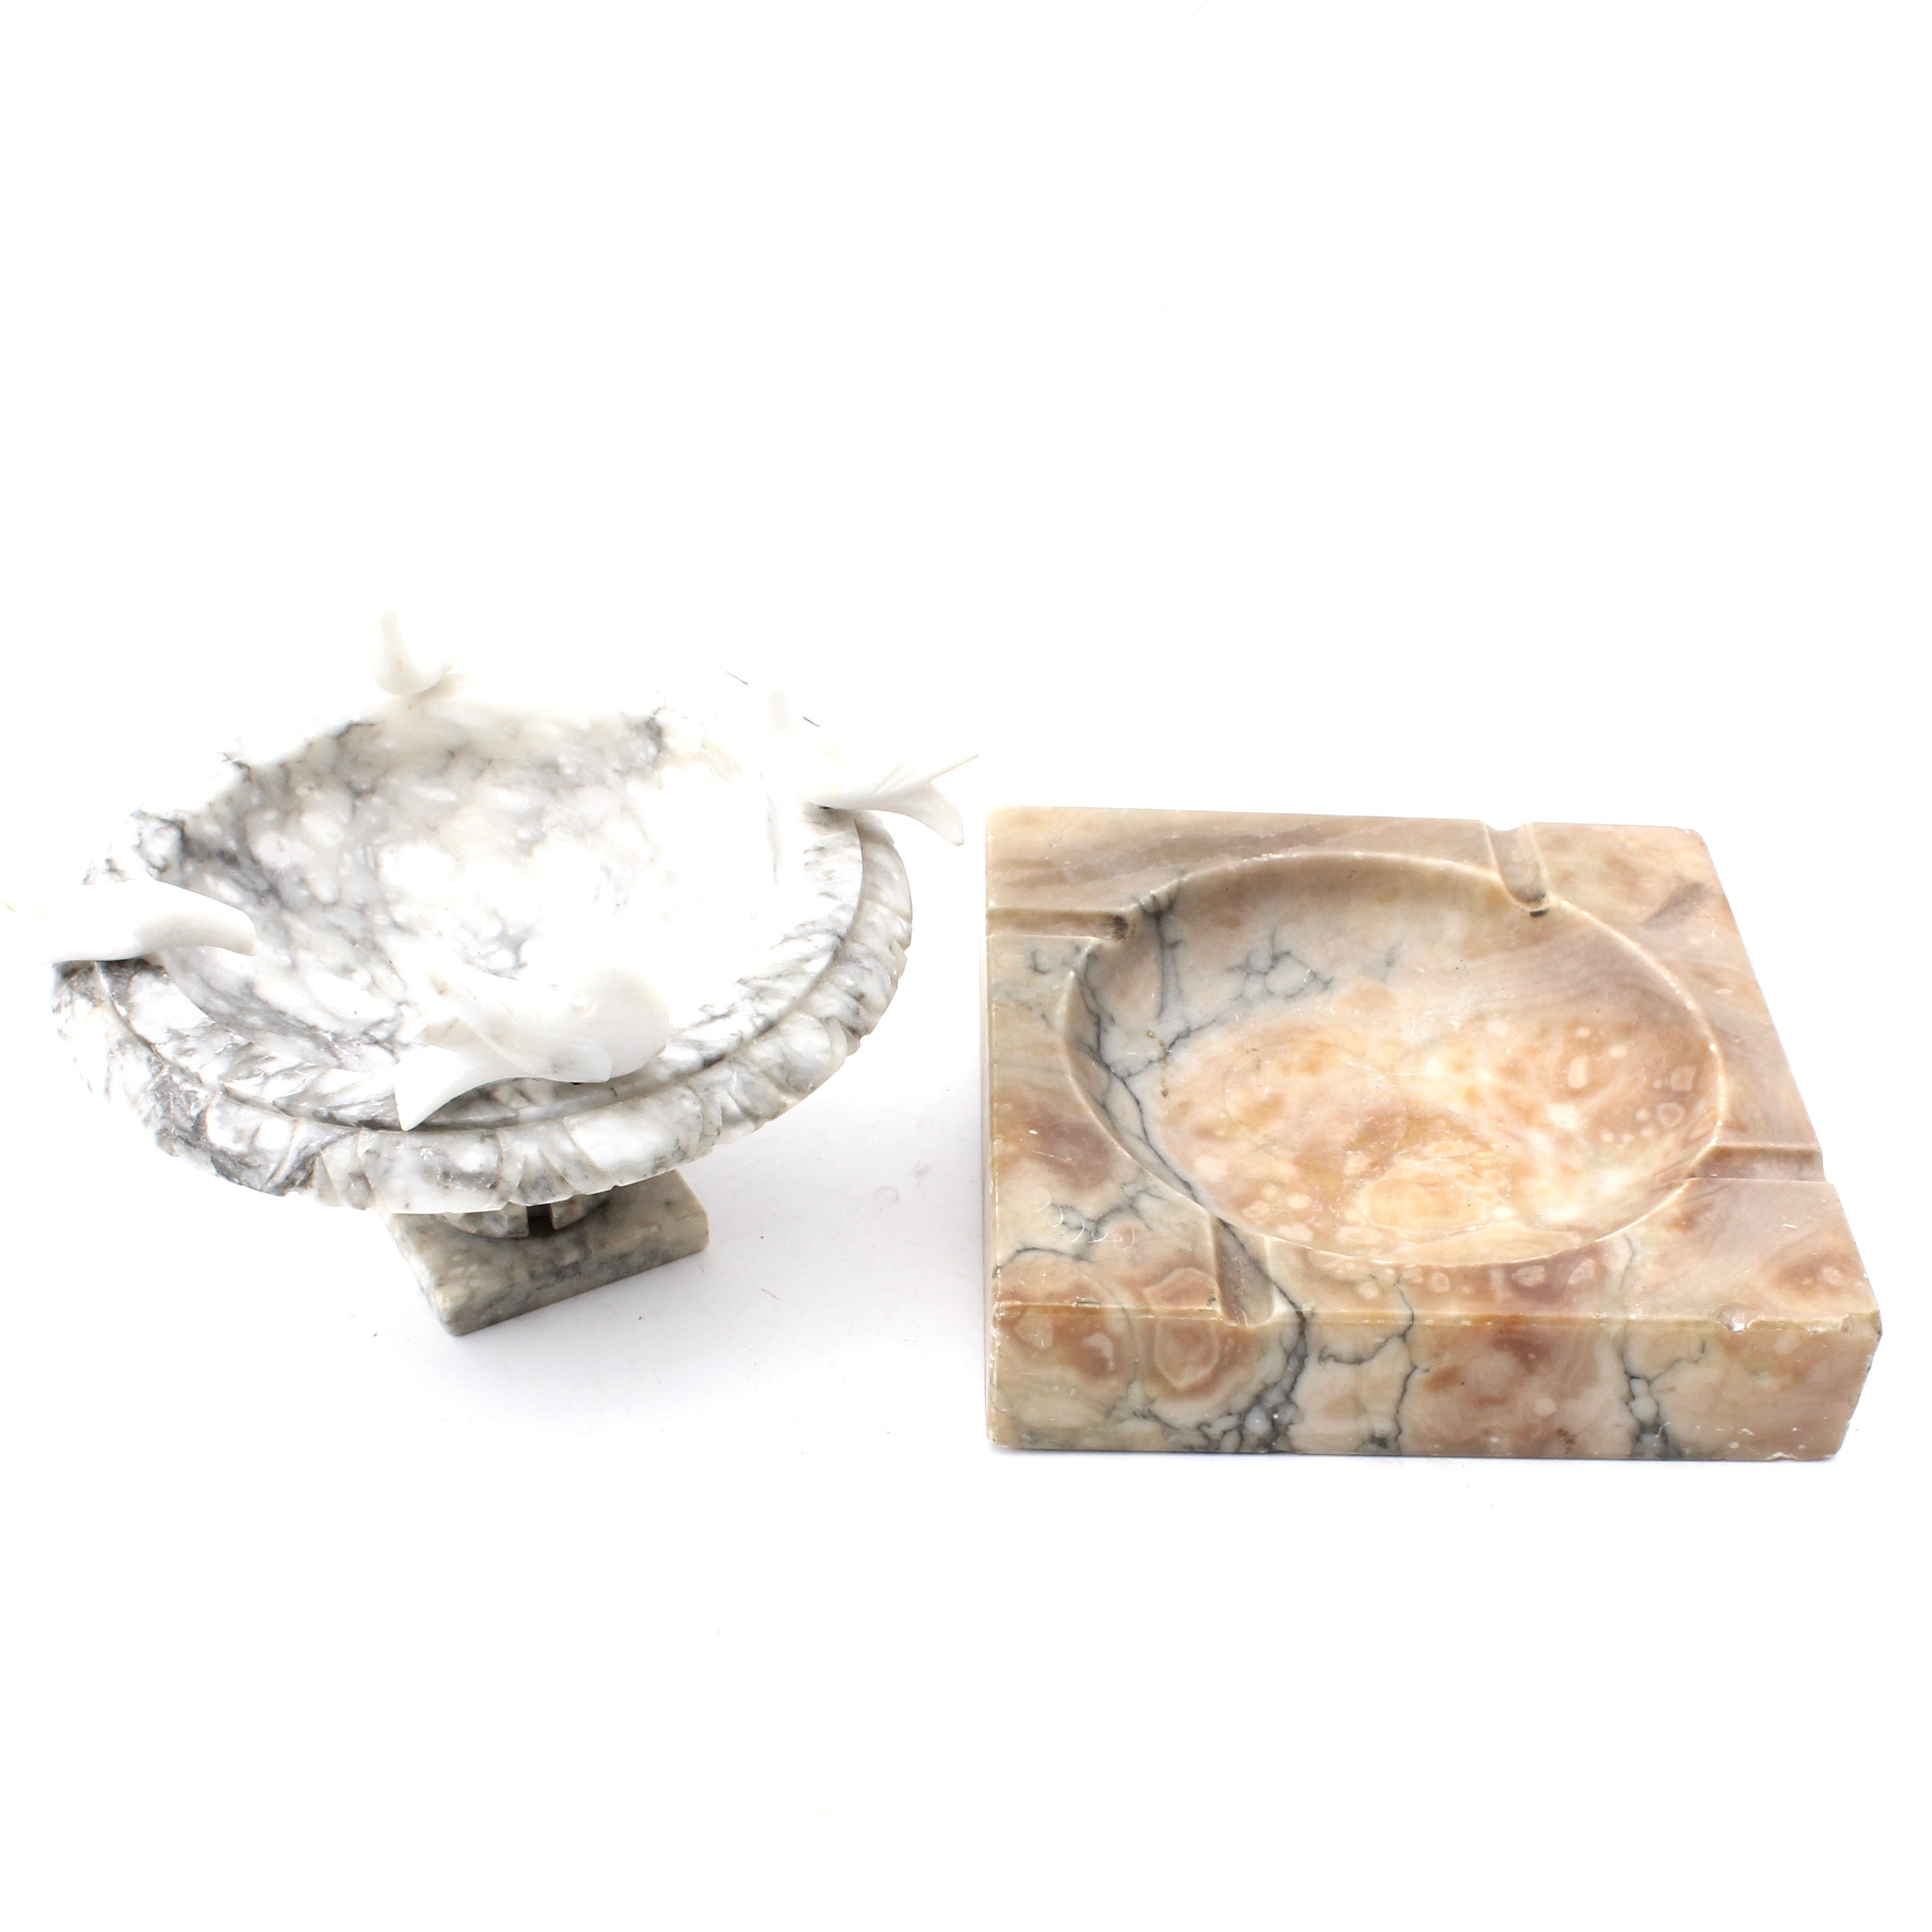 Marble Ashtray and Bird Bath Decor